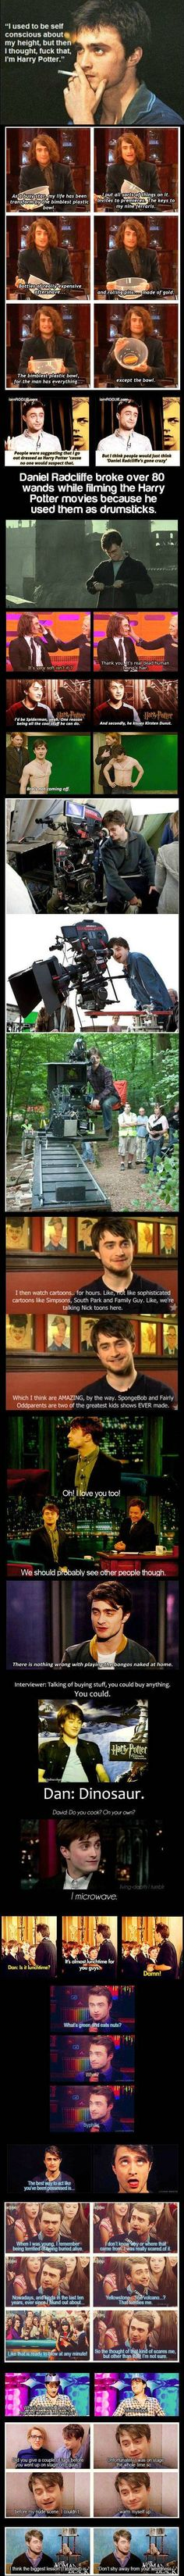 Daniel Radcliffe is just amazing.